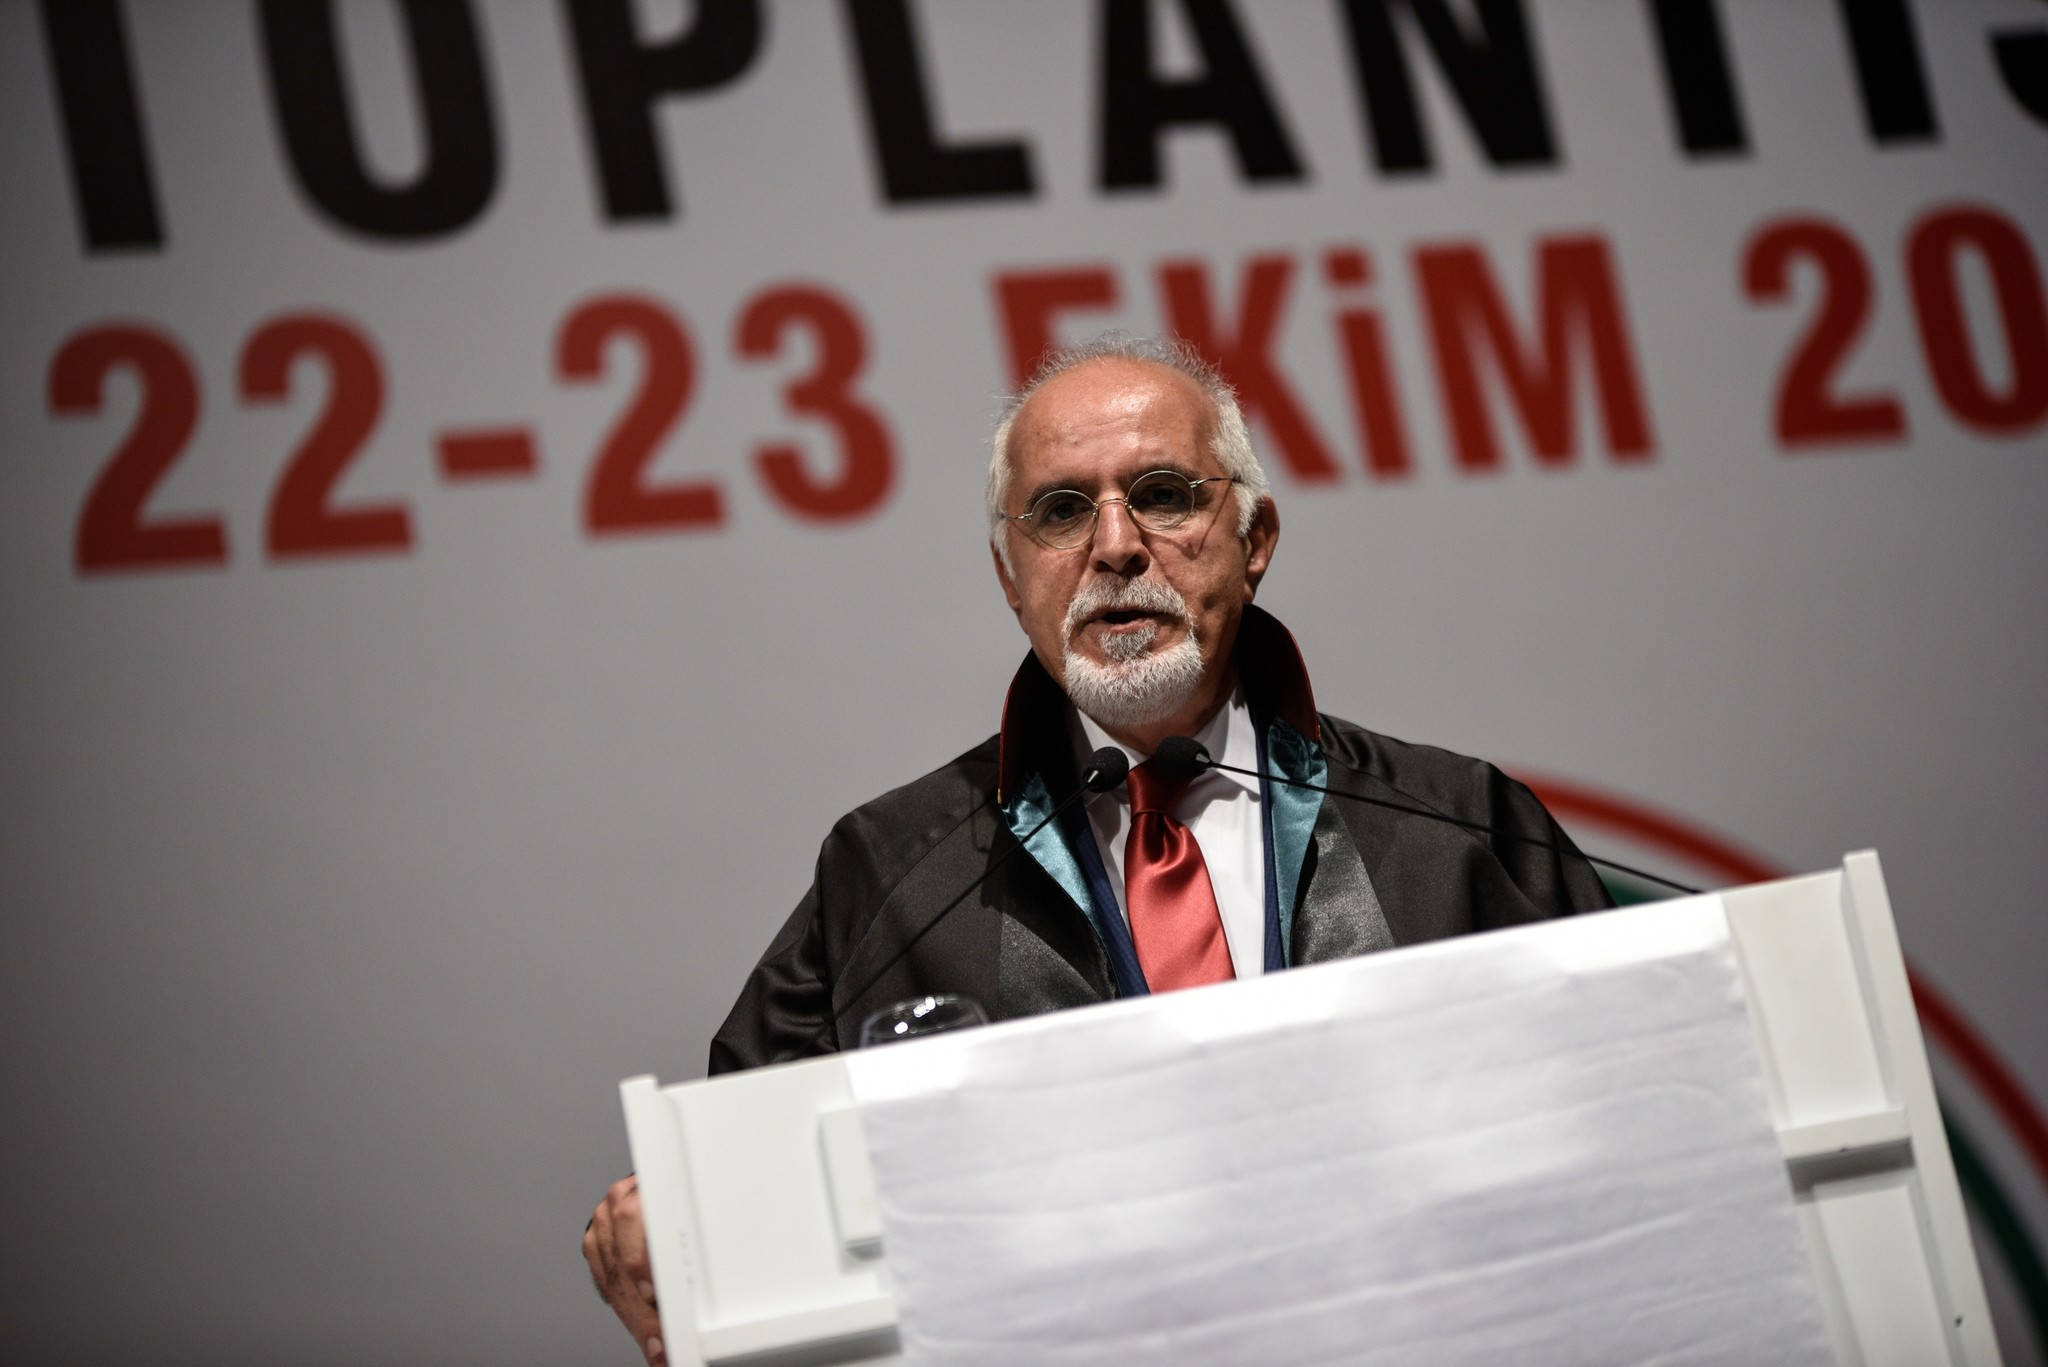 Mehmet Durakou011flu speaks before the Bar Association election at Haliu00e7 Conference Center in Istanbul on Sunday. (DHA Photo)